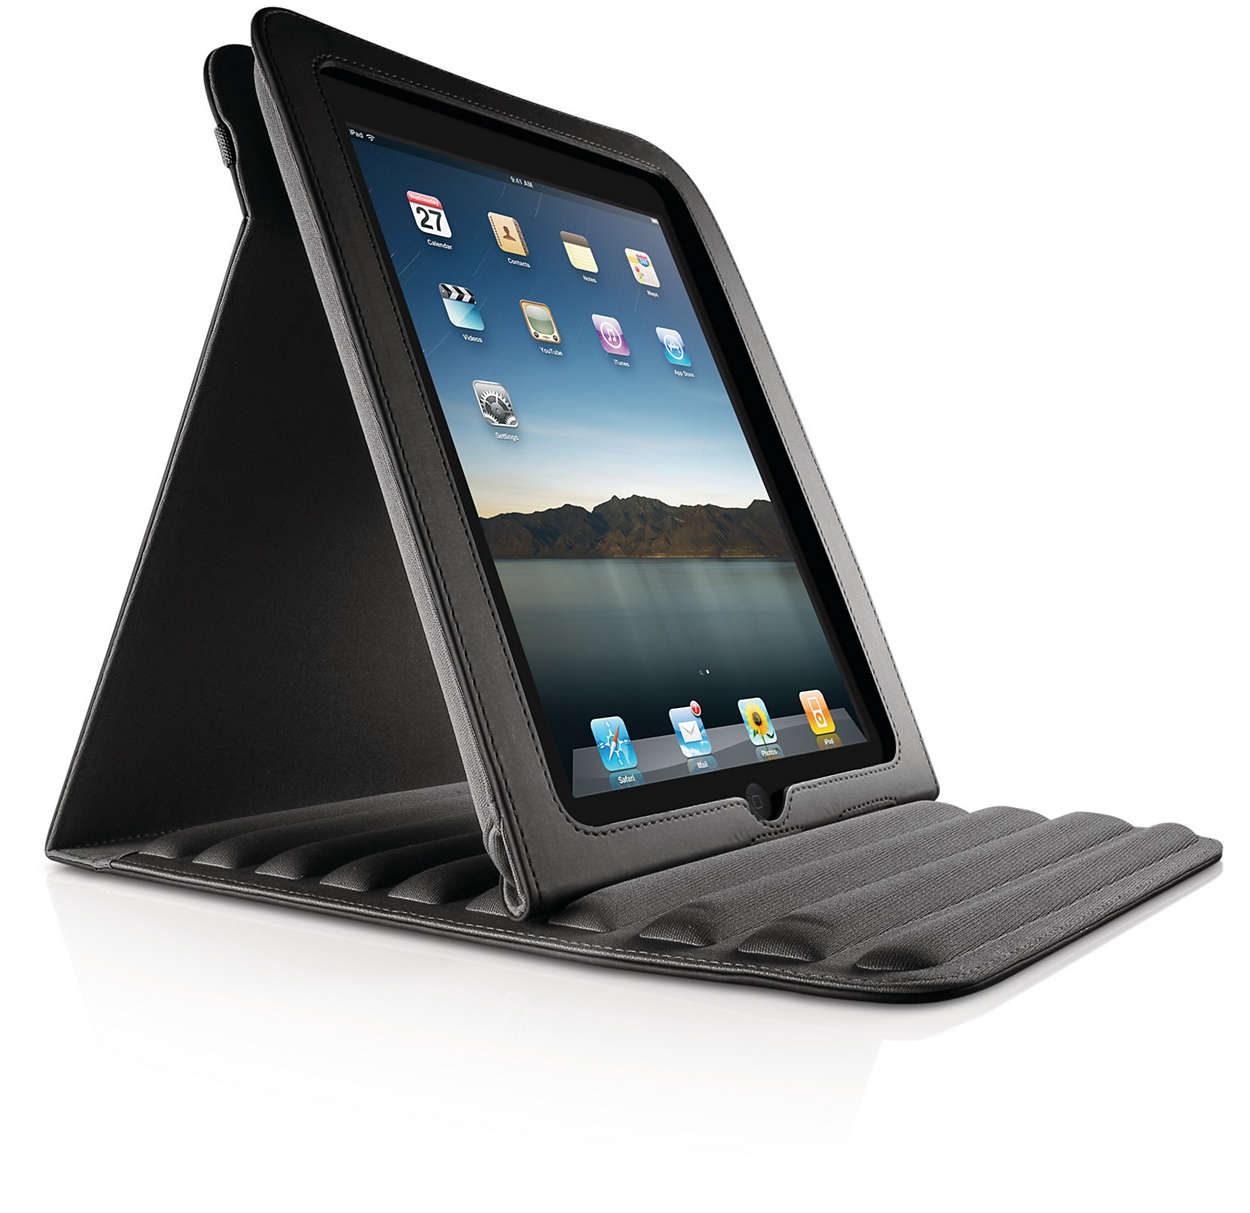 Smart case with padded construction